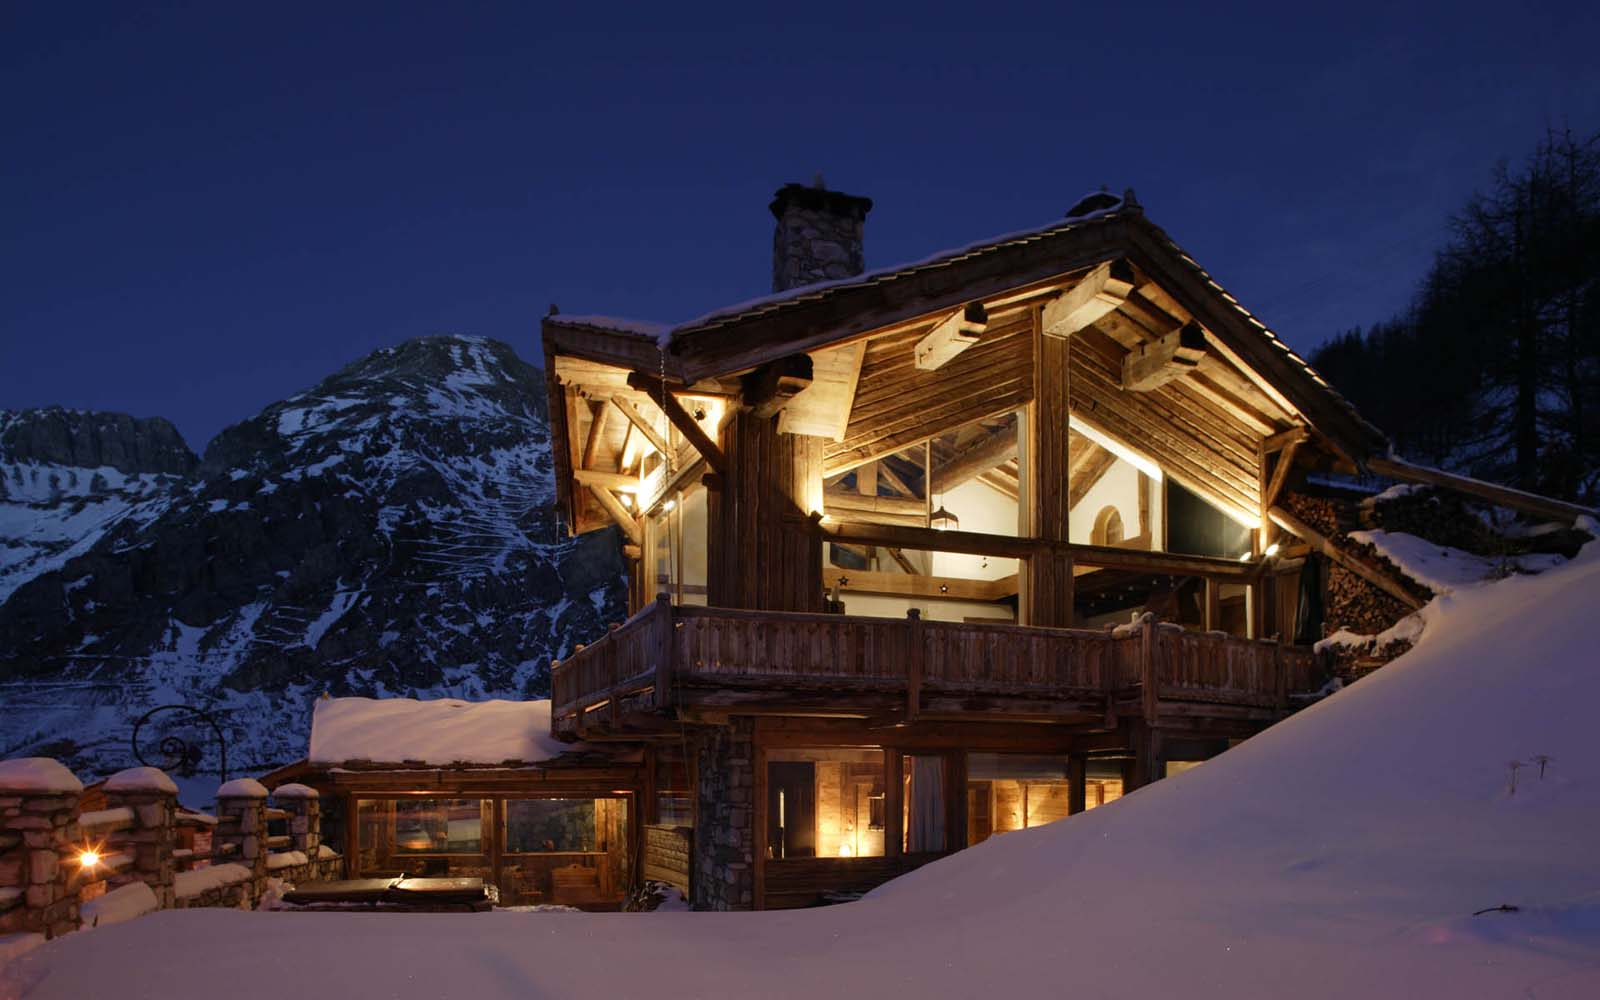 Chalet killimajaro in val d 39 isere by skiboutique for Lodges in france